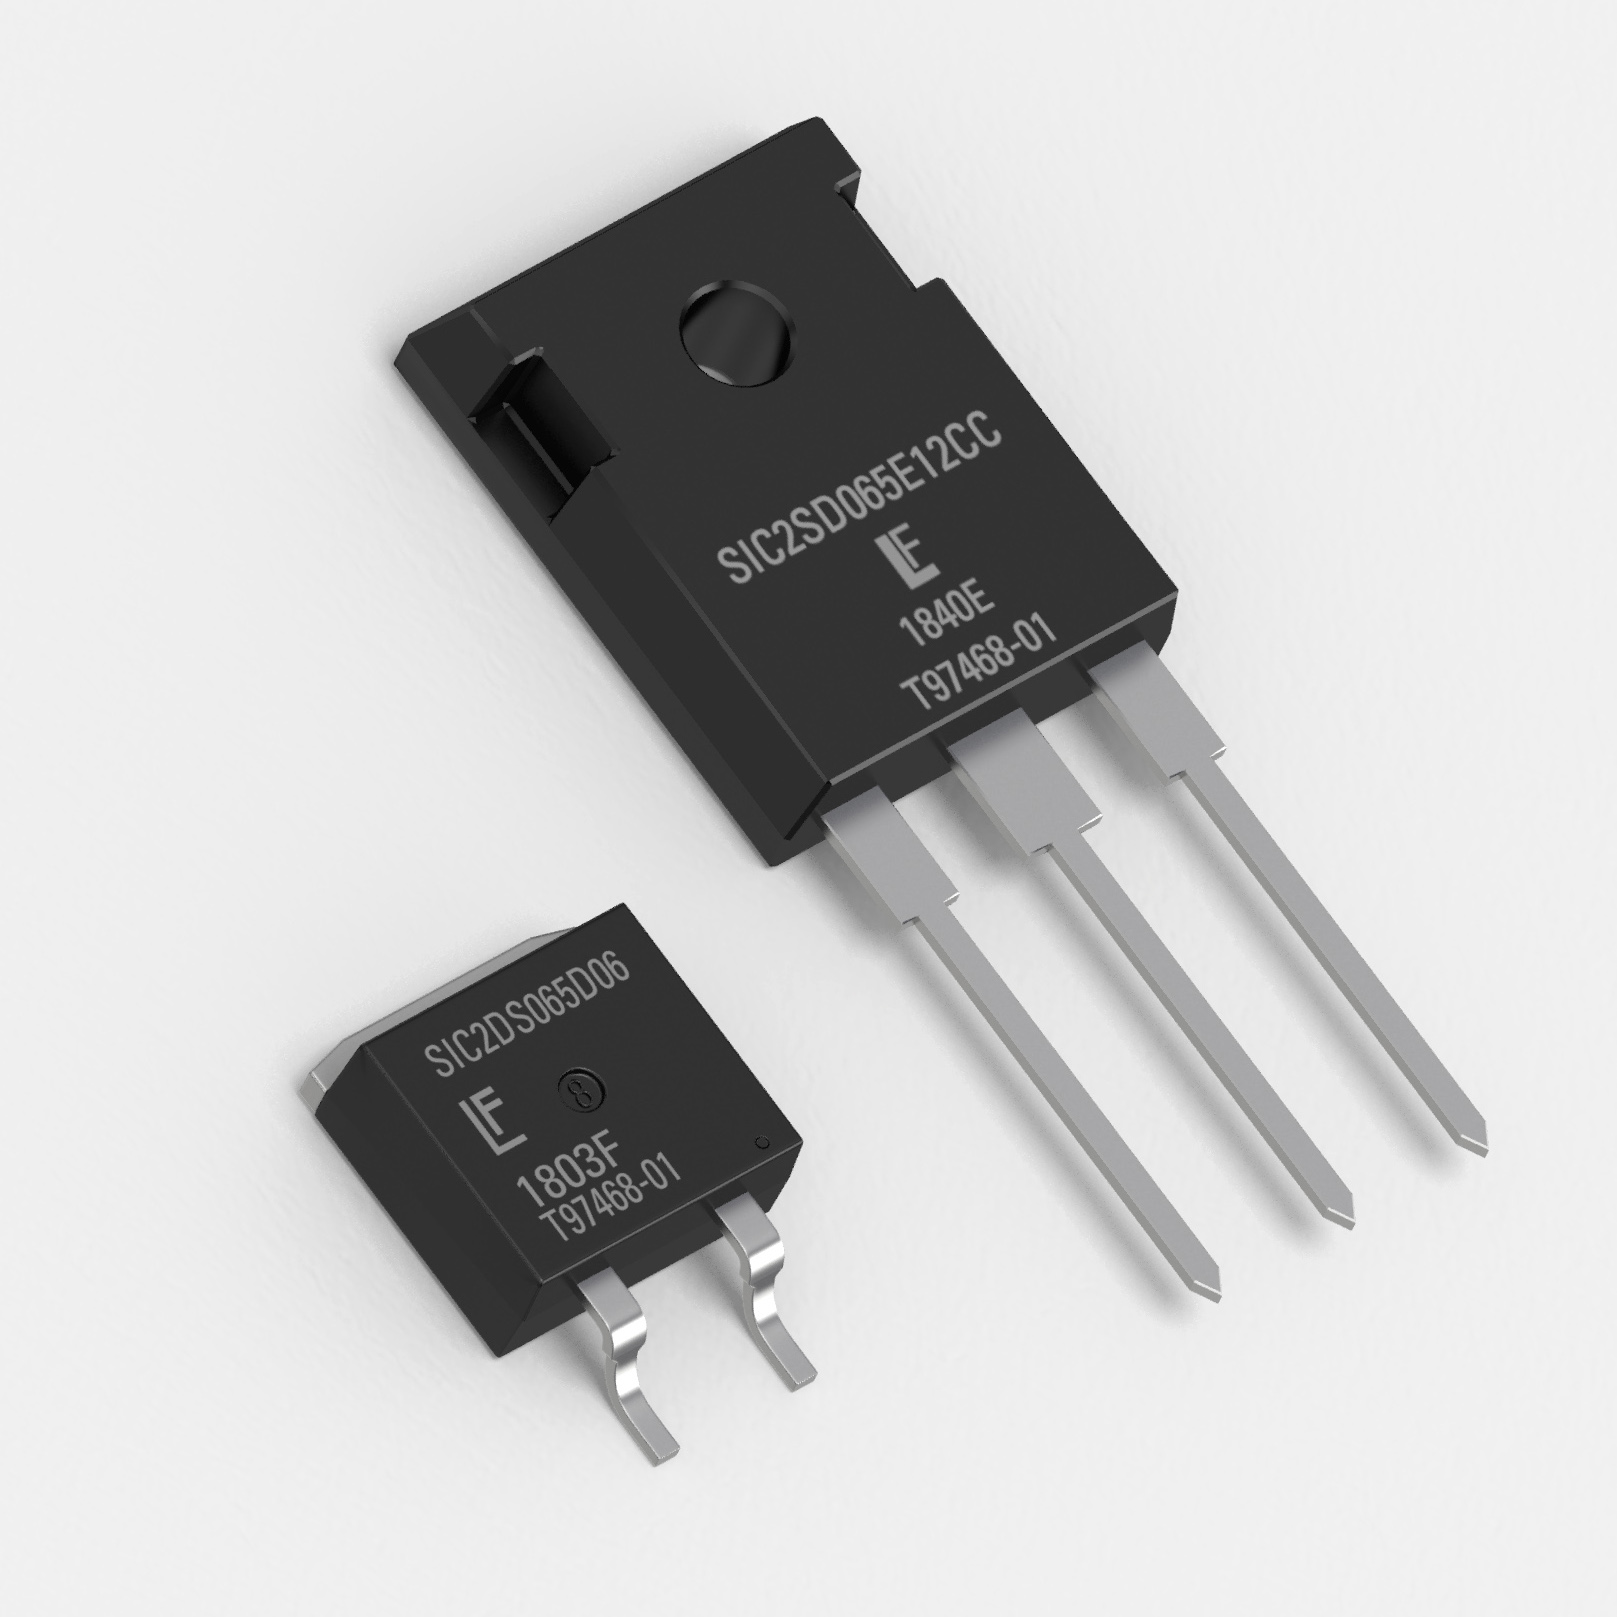 650V SiC Schottky Diodes with Current Ratings from 6A to 40A